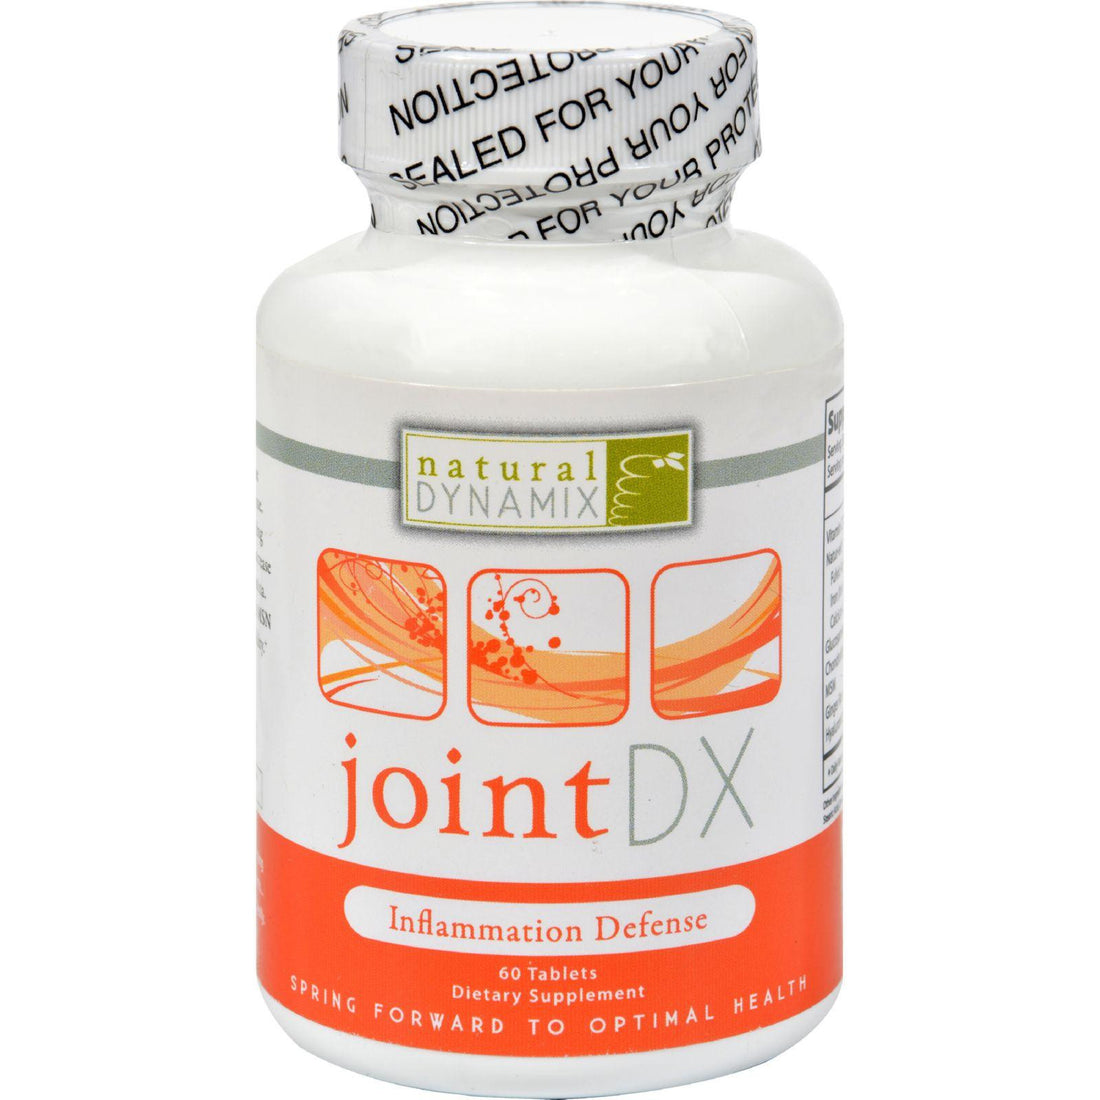 Mother Mantis: Natural Dynamix Joint Dx - 60 Tablets Natural Dynamix